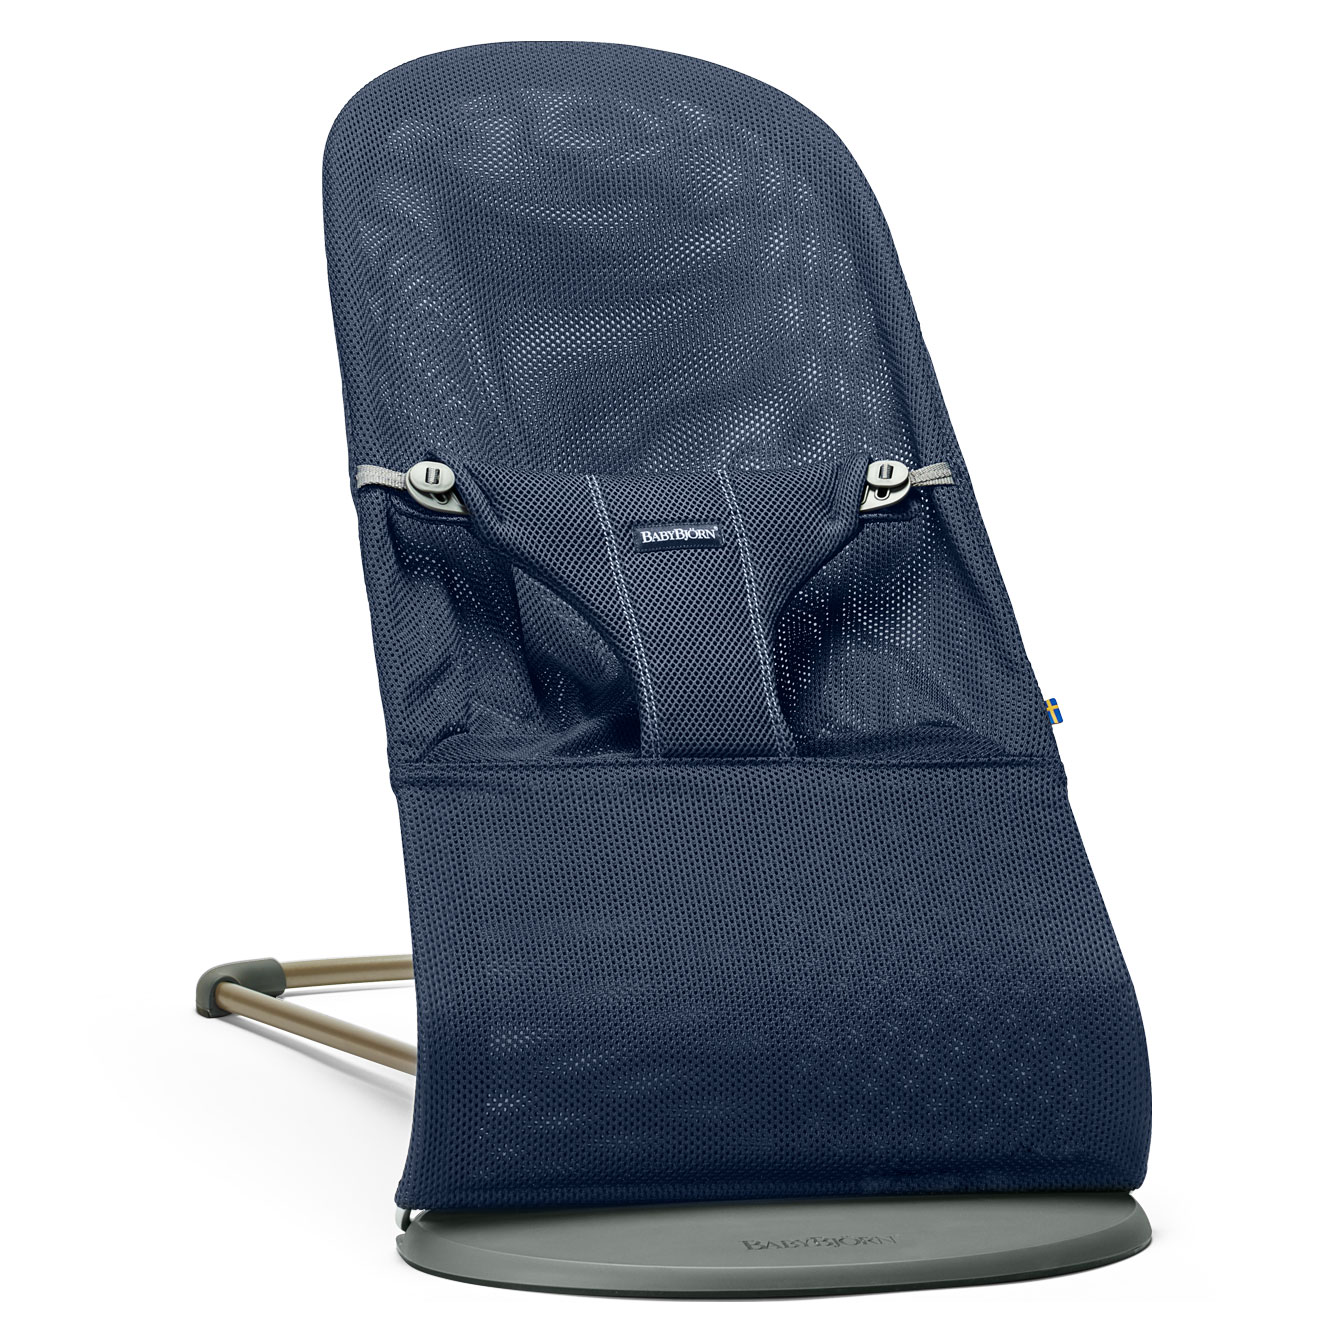 Image of   Babybjörn skråstol - Bliss - Navy Blue - Mesh